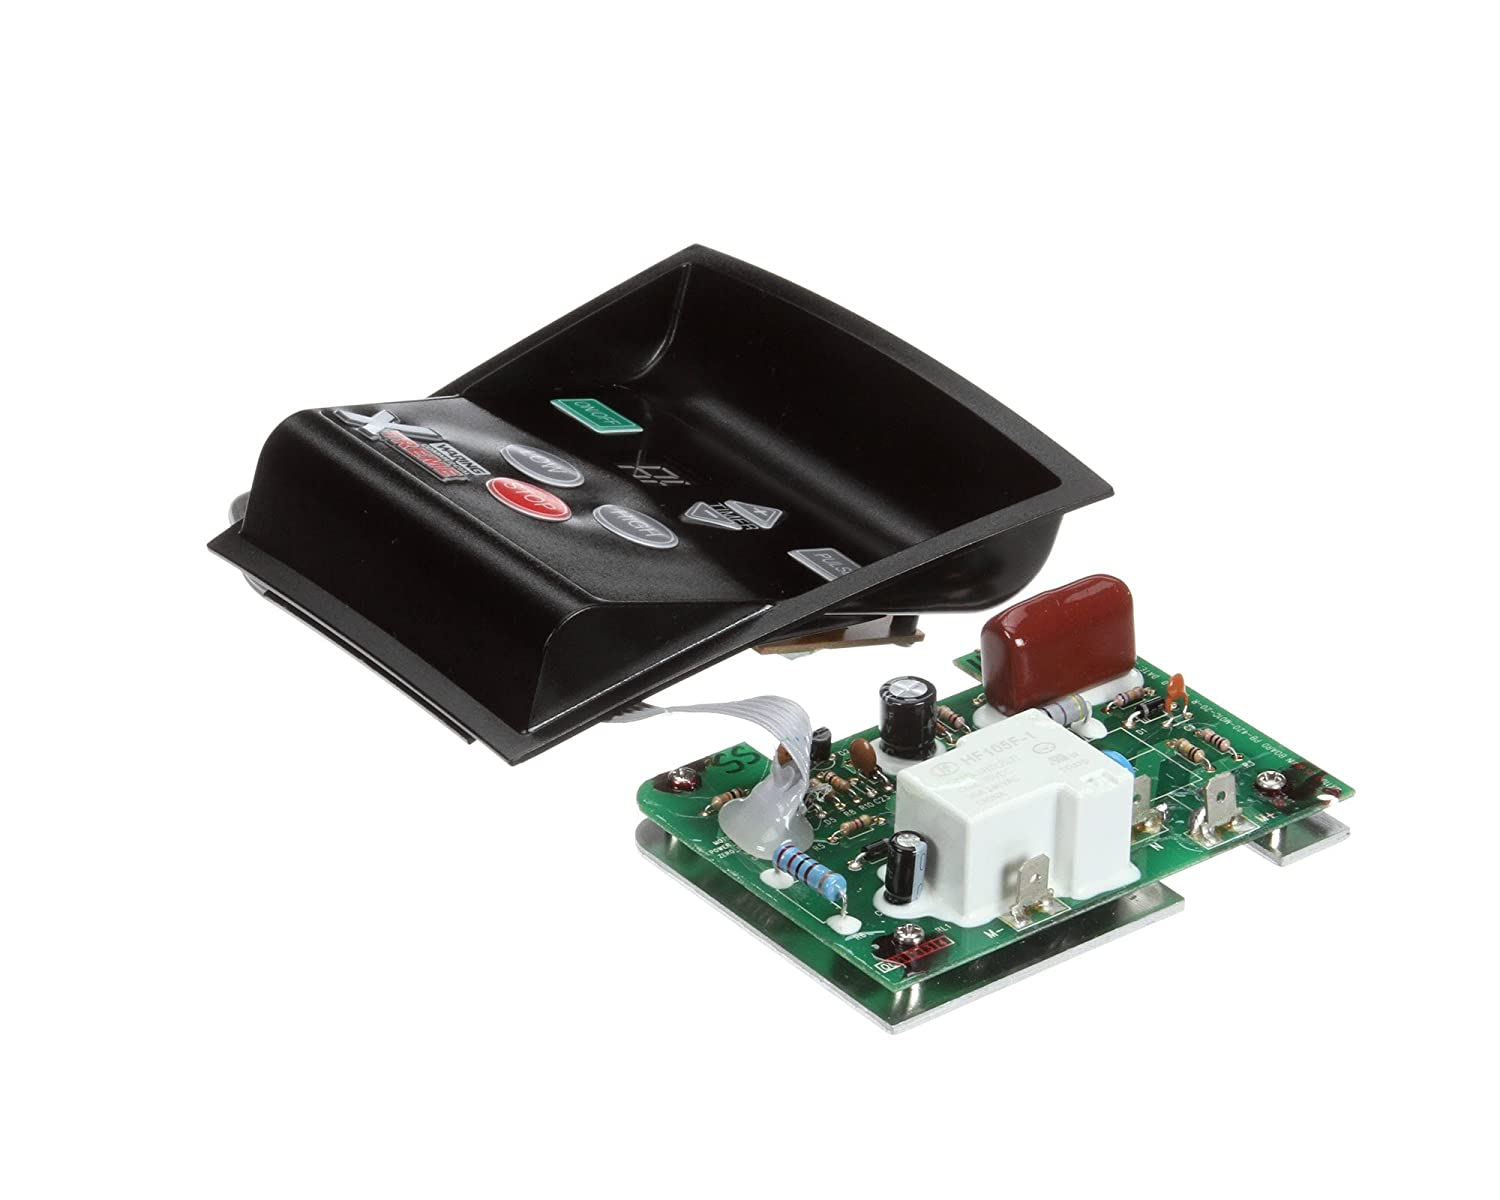 Waring 029810 Soft Start Control Panel for Mx11 Series Router